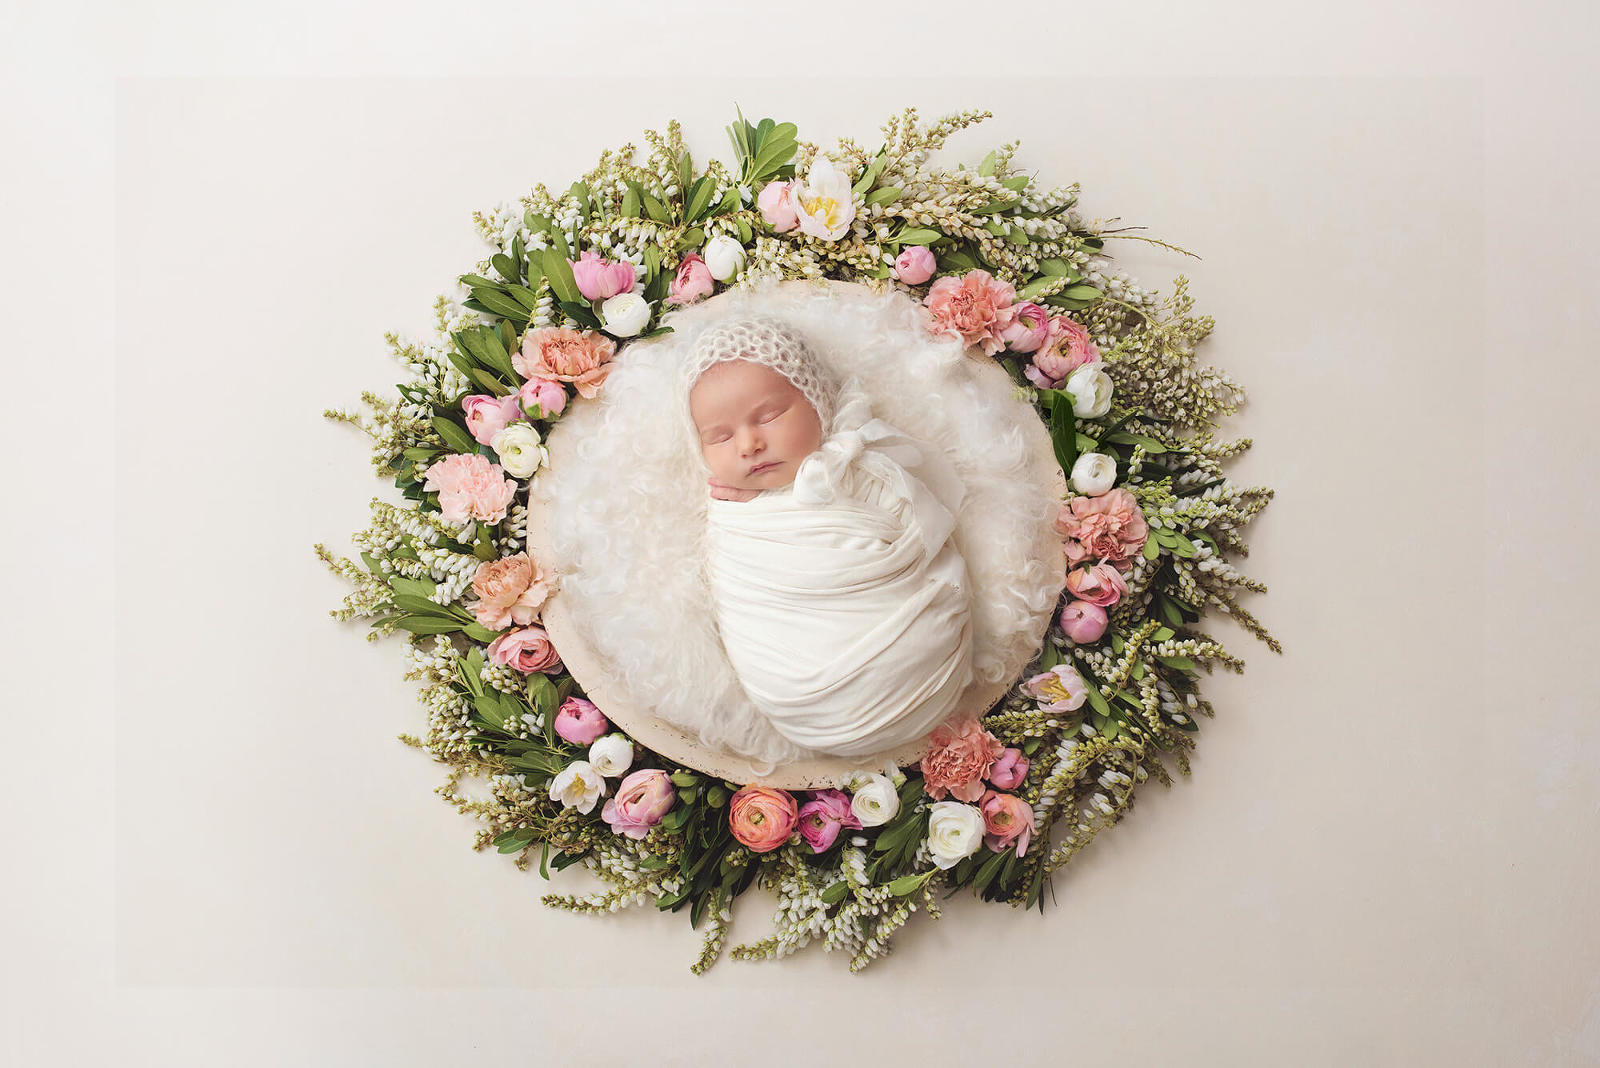 Baby girl during her newborn session laying in a plush nest surrounded by flowers and greenery during her session with Belle Vie Photography in Tucson